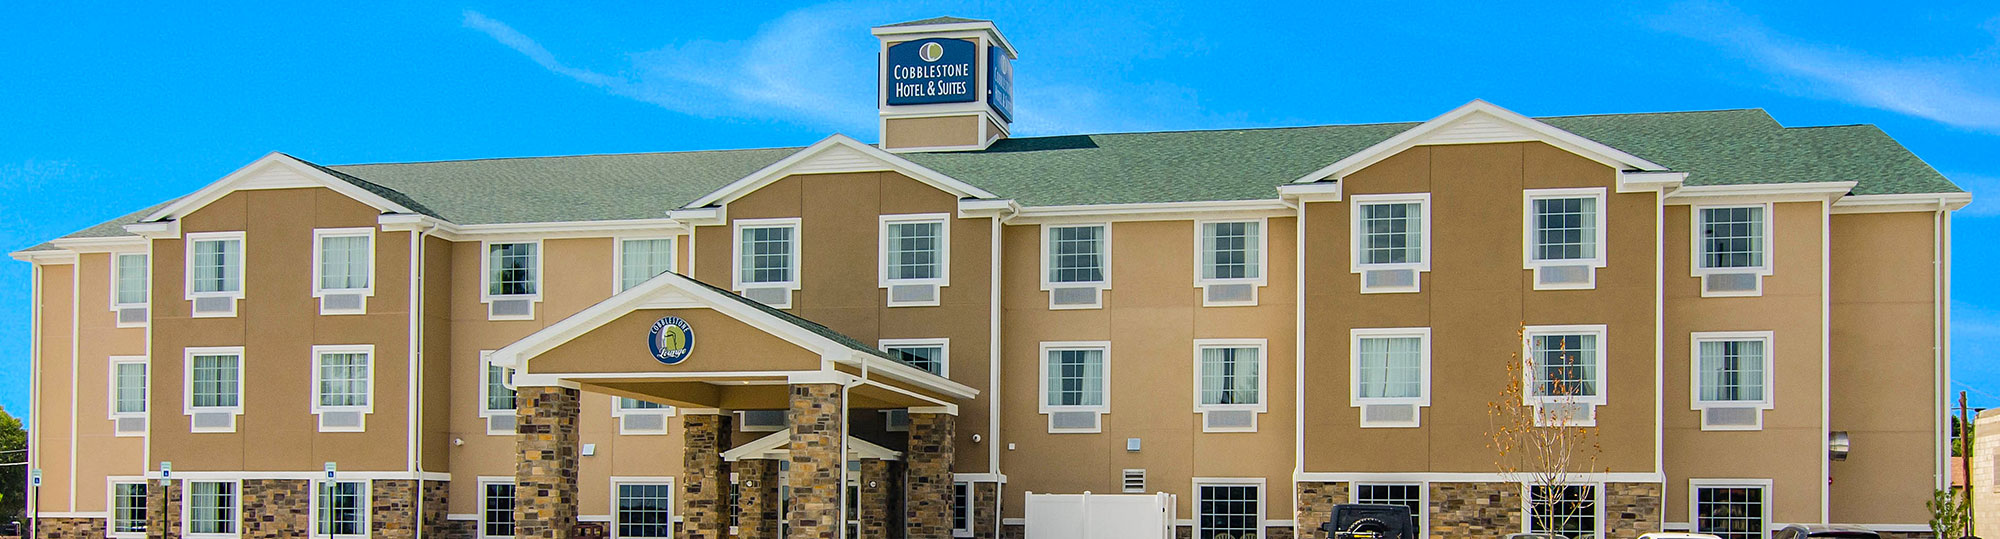 Cobblestone Hotel and Suites Elizabethton